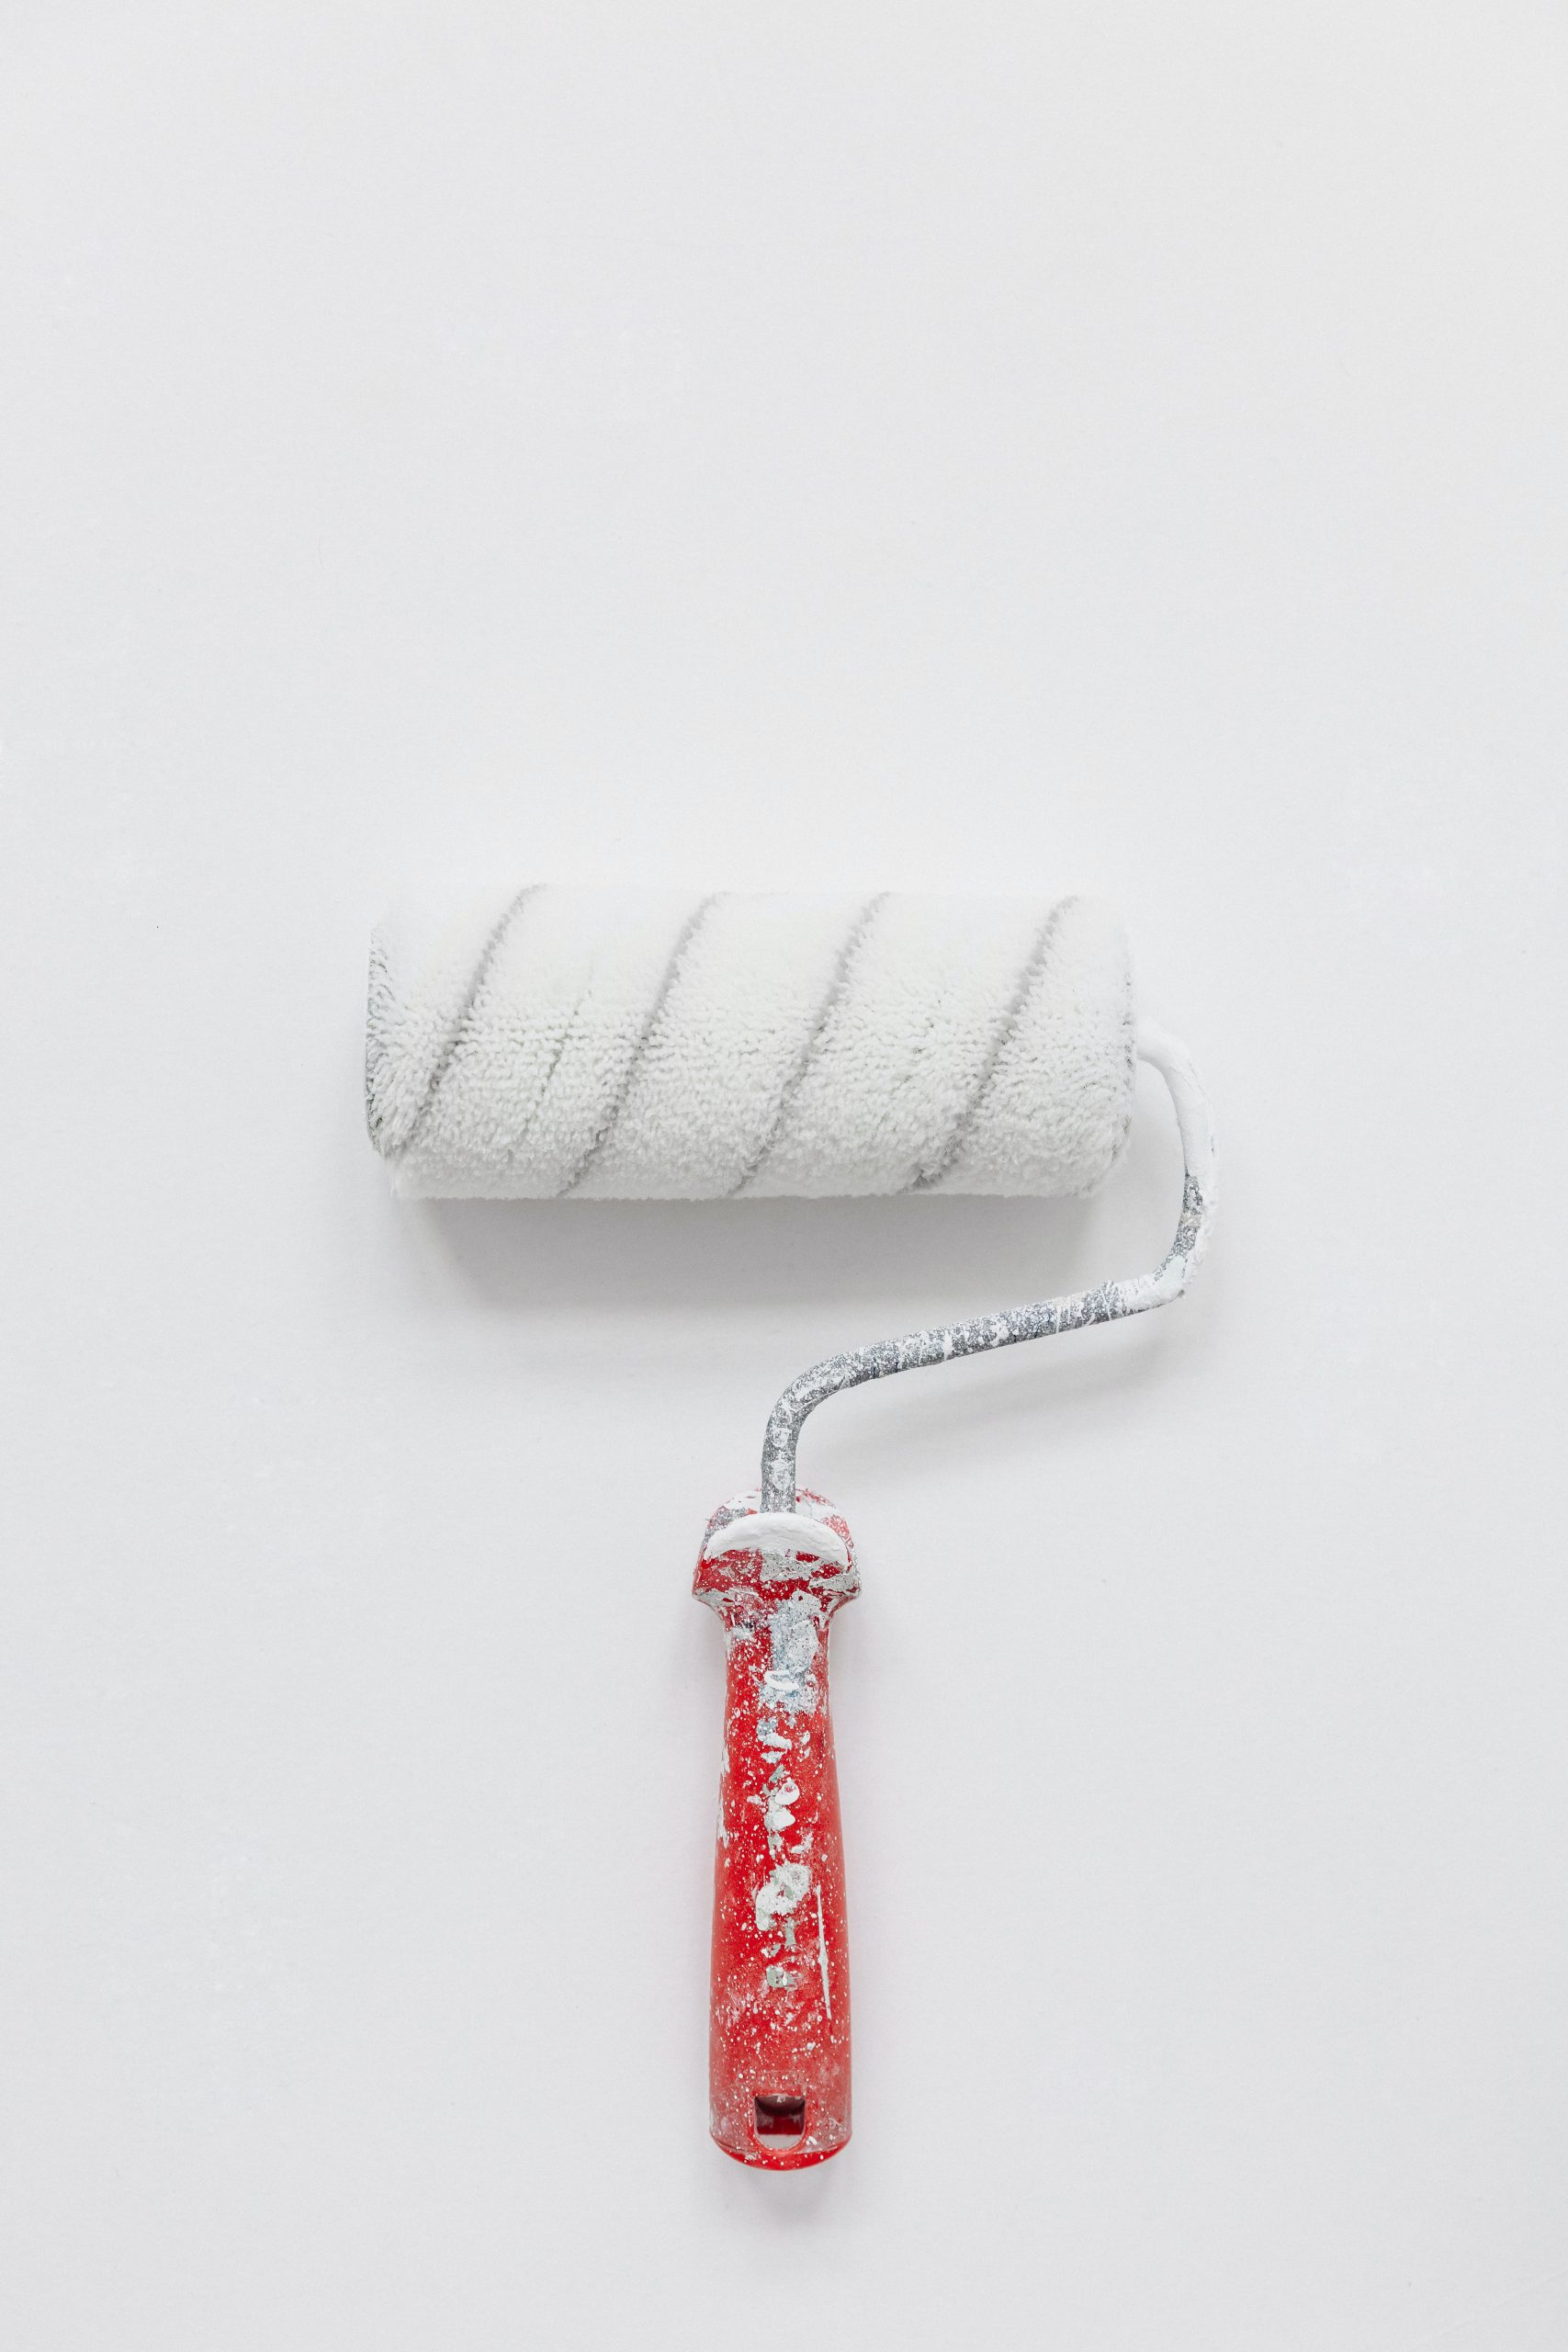 An image of a paint rolling tool.